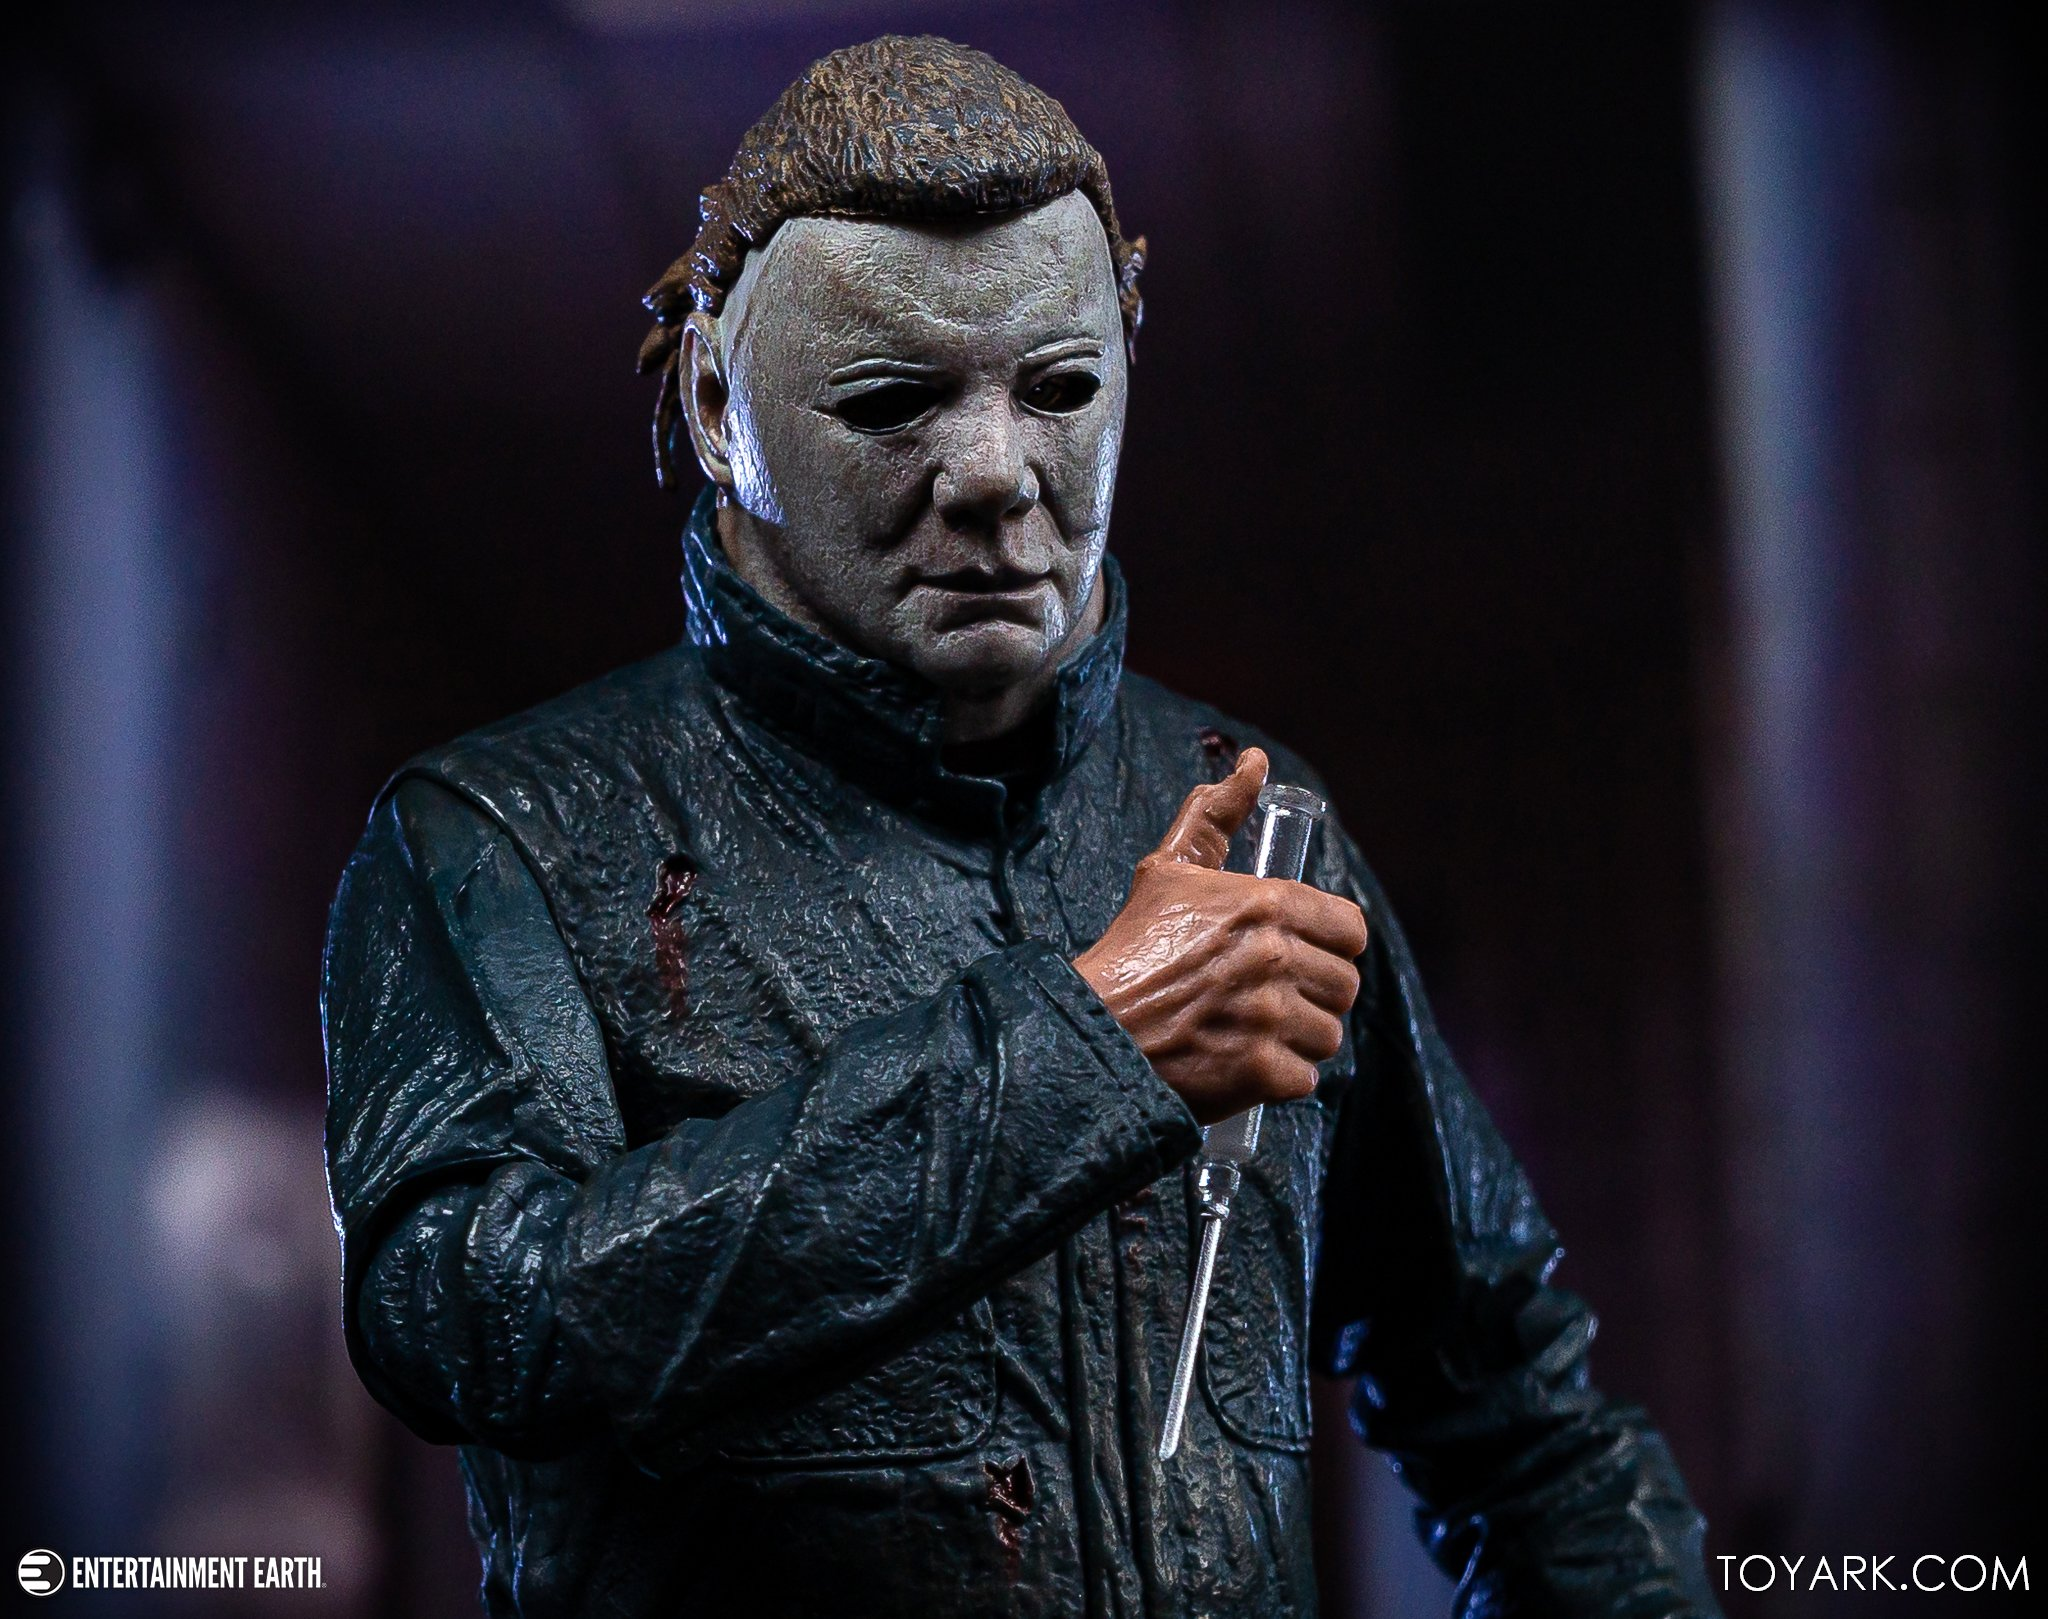 https://news.toyark.com/wp-content/uploads/sites/4/2019/10/NECA-Halloween-II-Michael-Myers-024.jpg